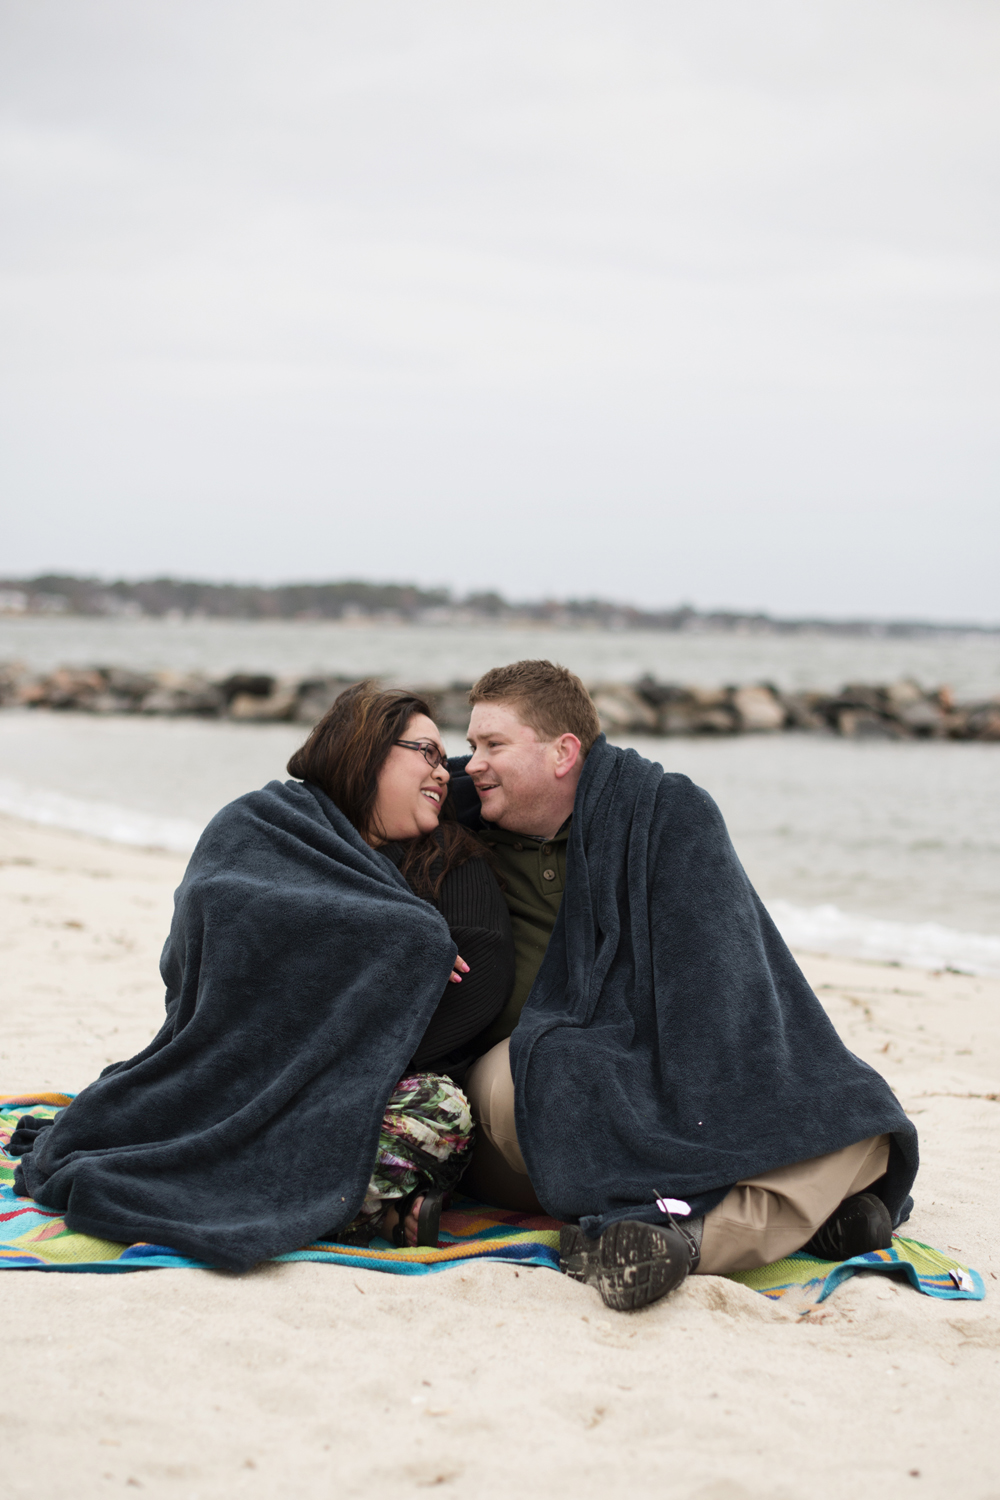 Winter beach engagement session posing ideas with a blanket